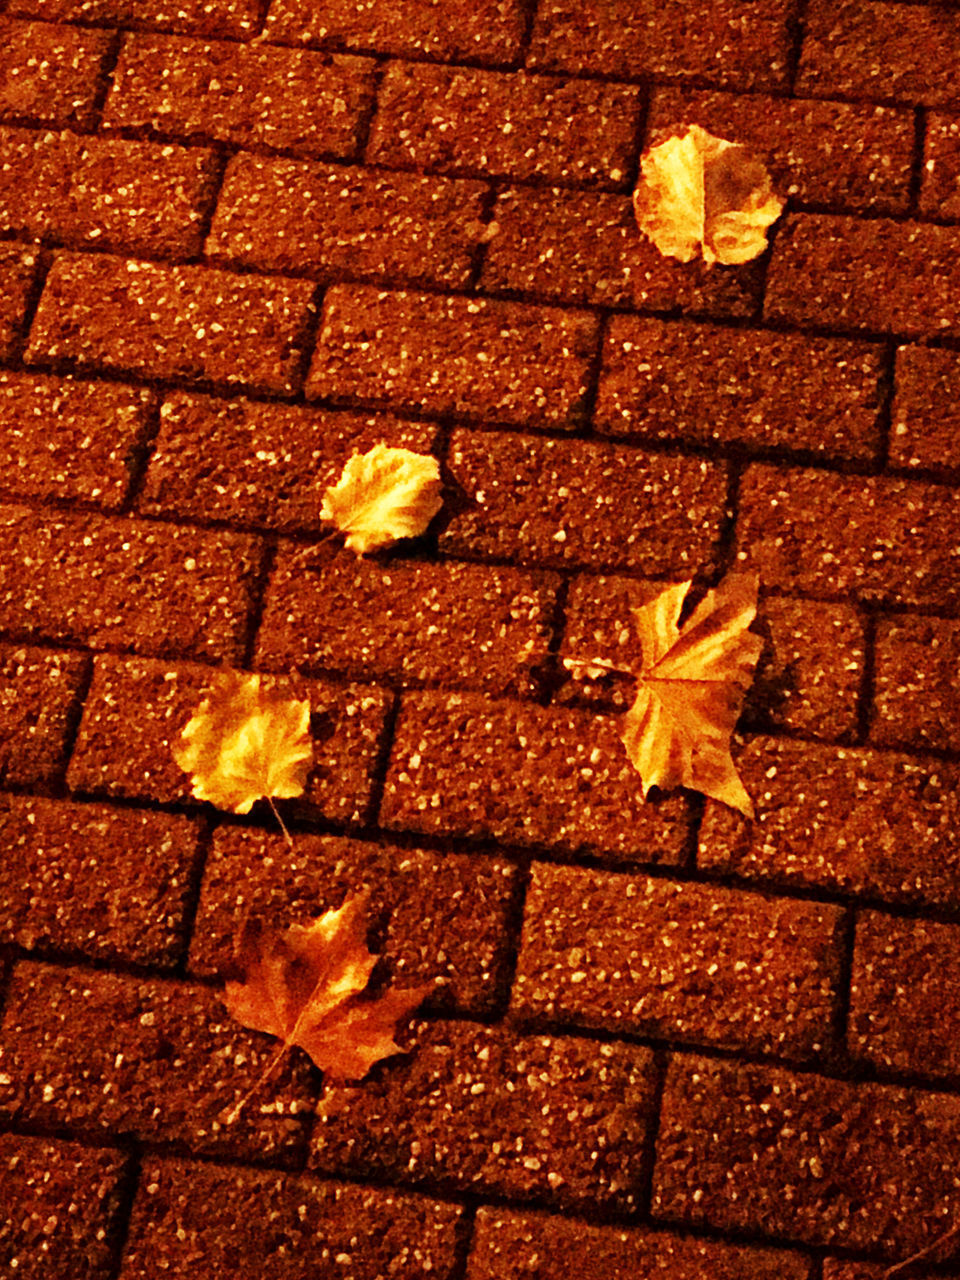 leaf, plant part, nature, autumn, no people, plant, close-up, outdoors, change, footpath, street, beauty in nature, yellow, vulnerability, orange color, sunlight, flower, fragility, brick, day, paving stone, leaves, natural condition